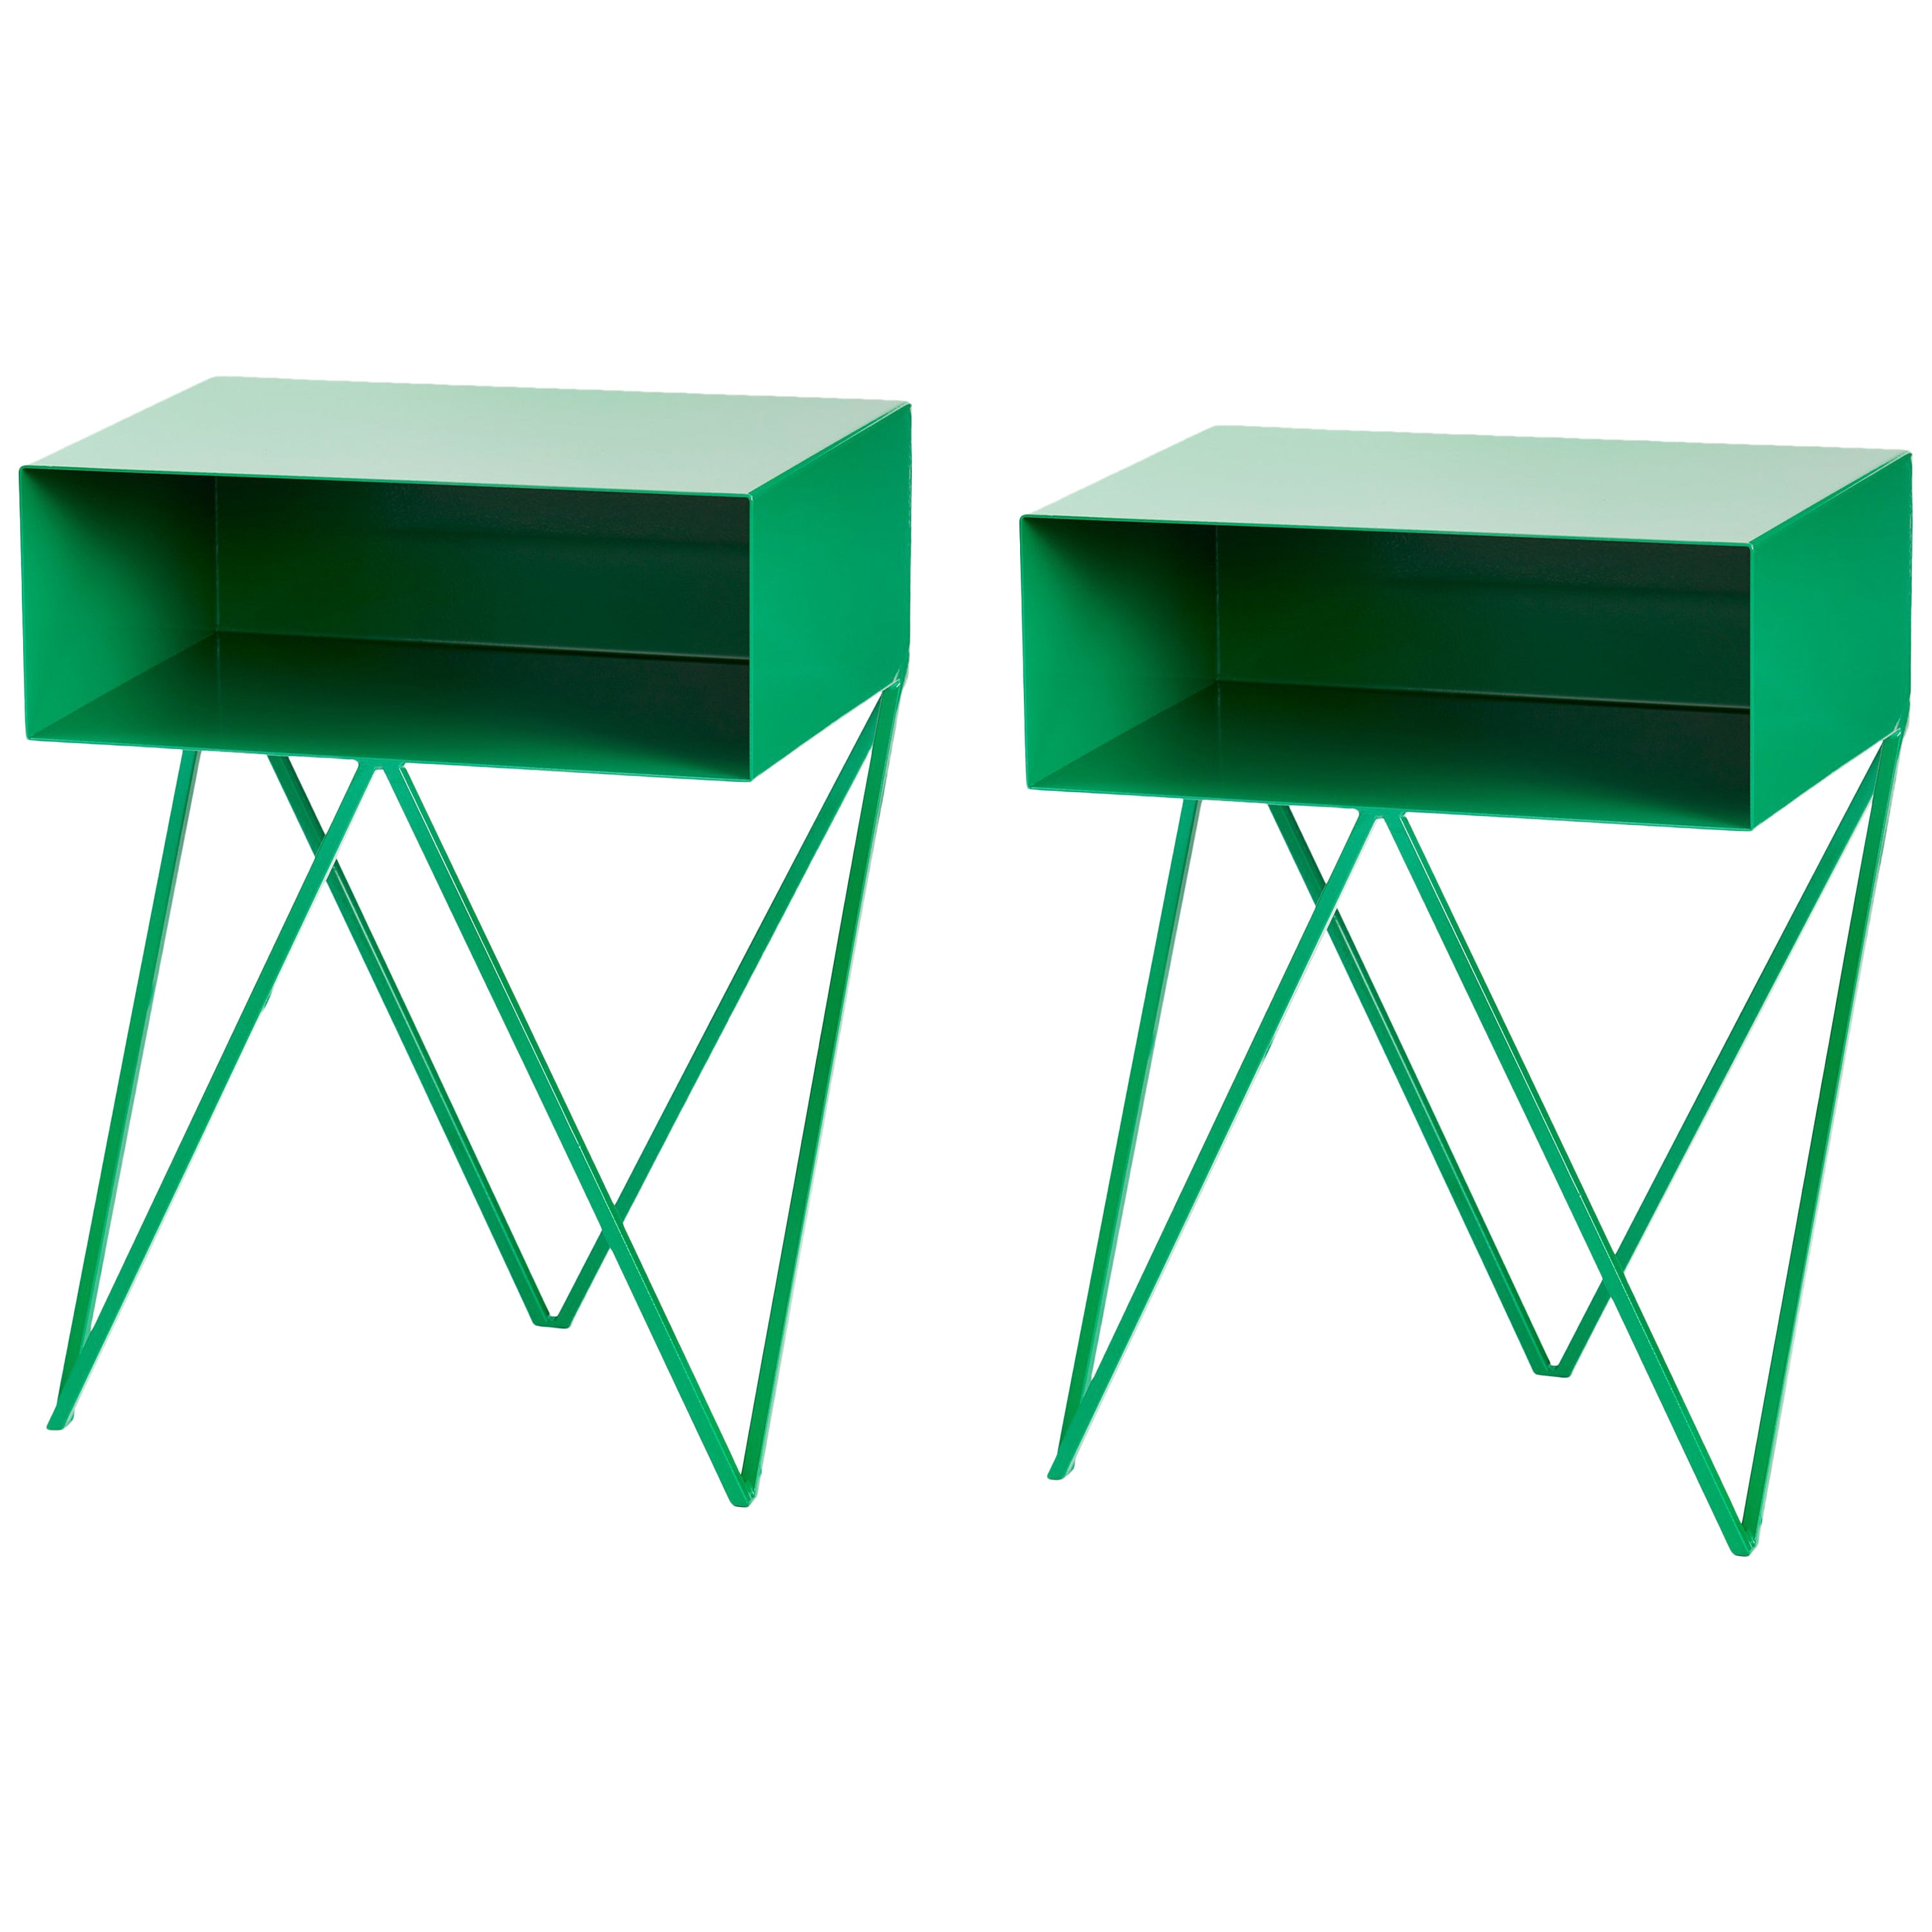 Pair of Green Powder Coated Steel Robot Bedside Tables